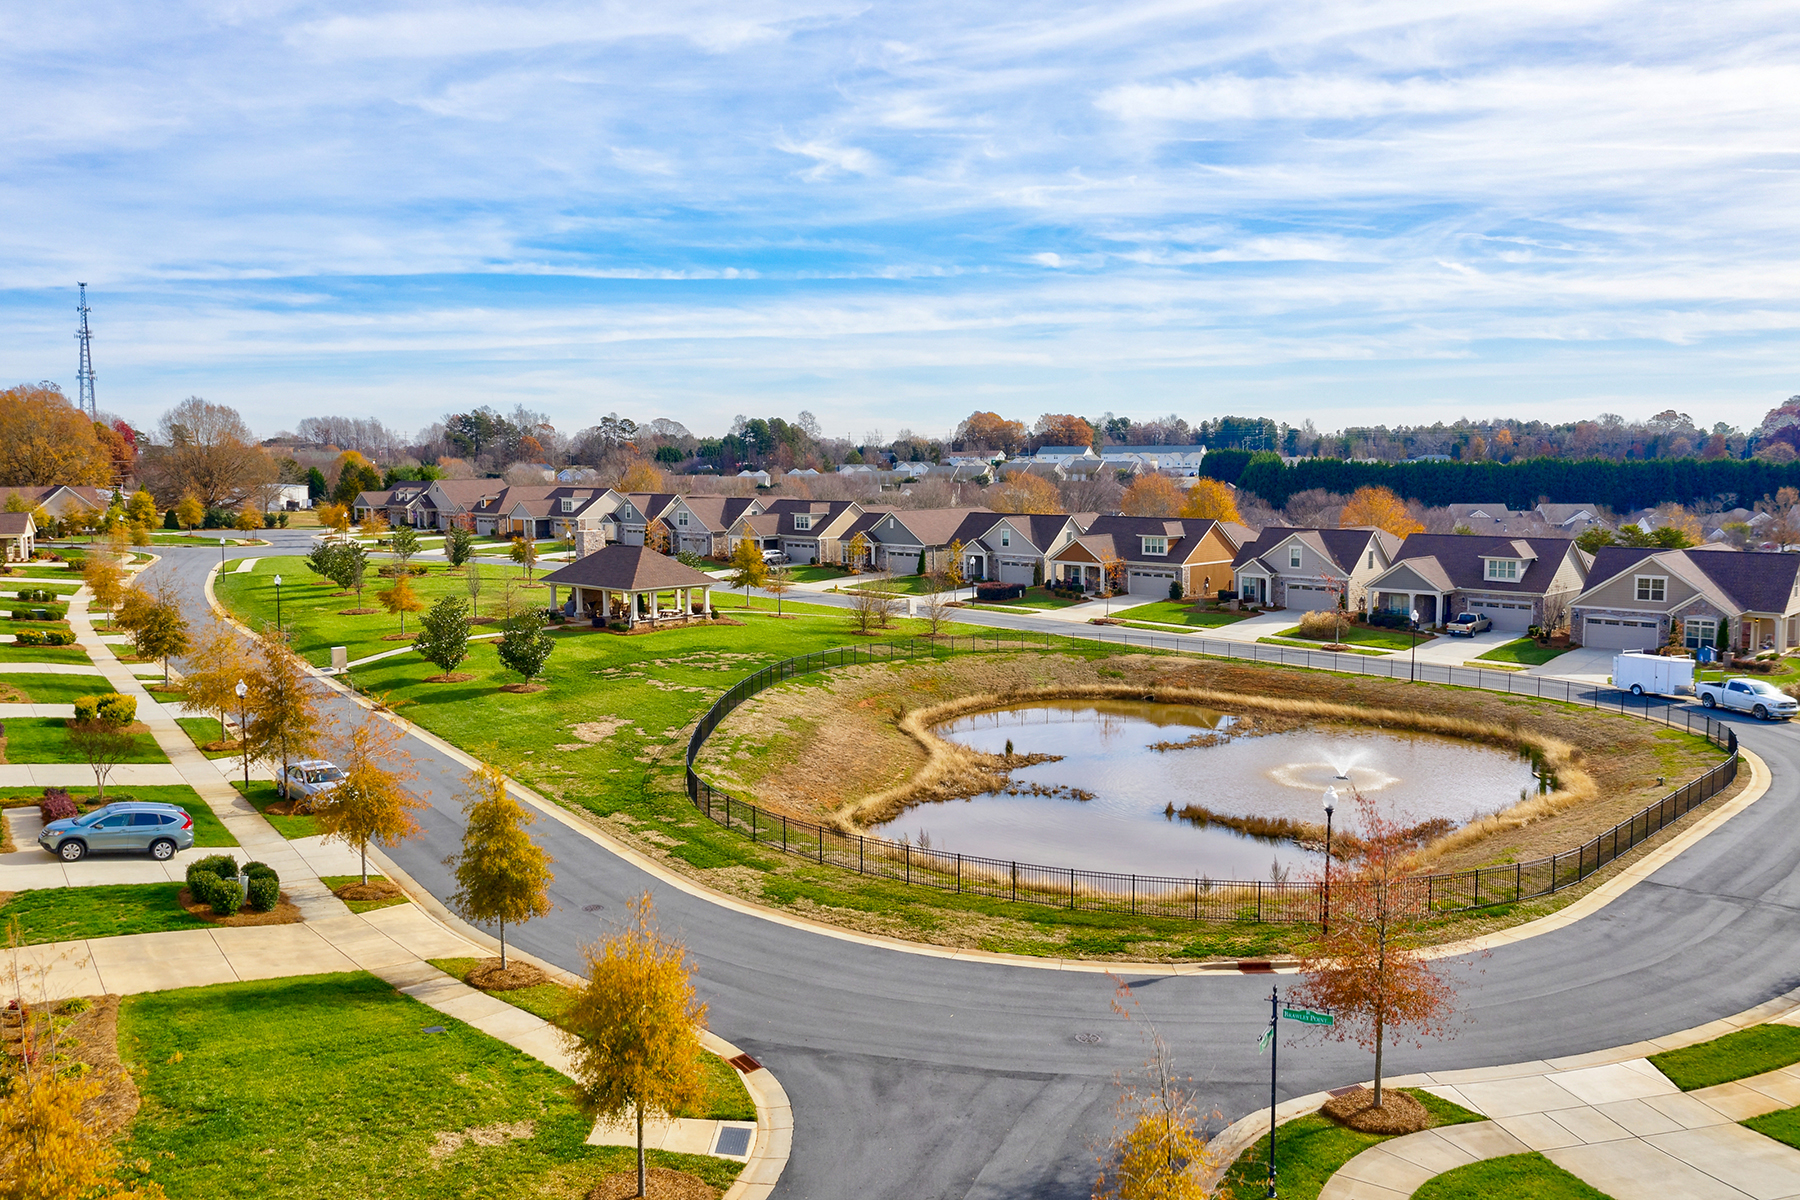 Single Family Homes for Active at THE COURTYARDS AT BRAWLEY POINT 147 Brawley Point Cir Mooresville, North Carolina 28117 United States